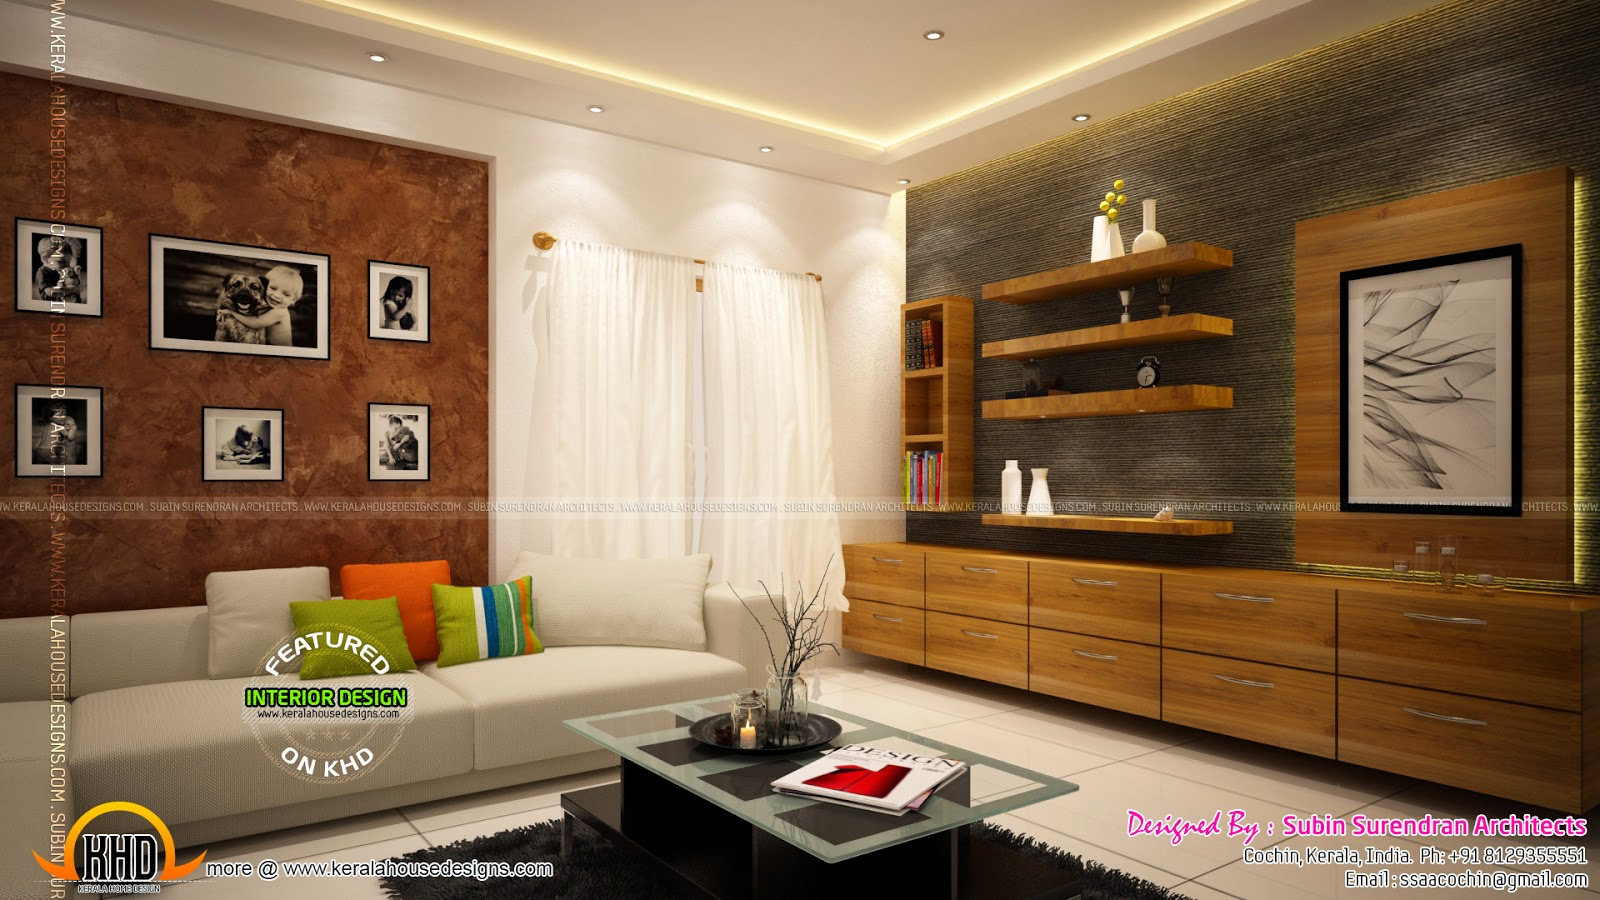 Interior design cochin kerala home design and floor plans for Living room design ideas kerala